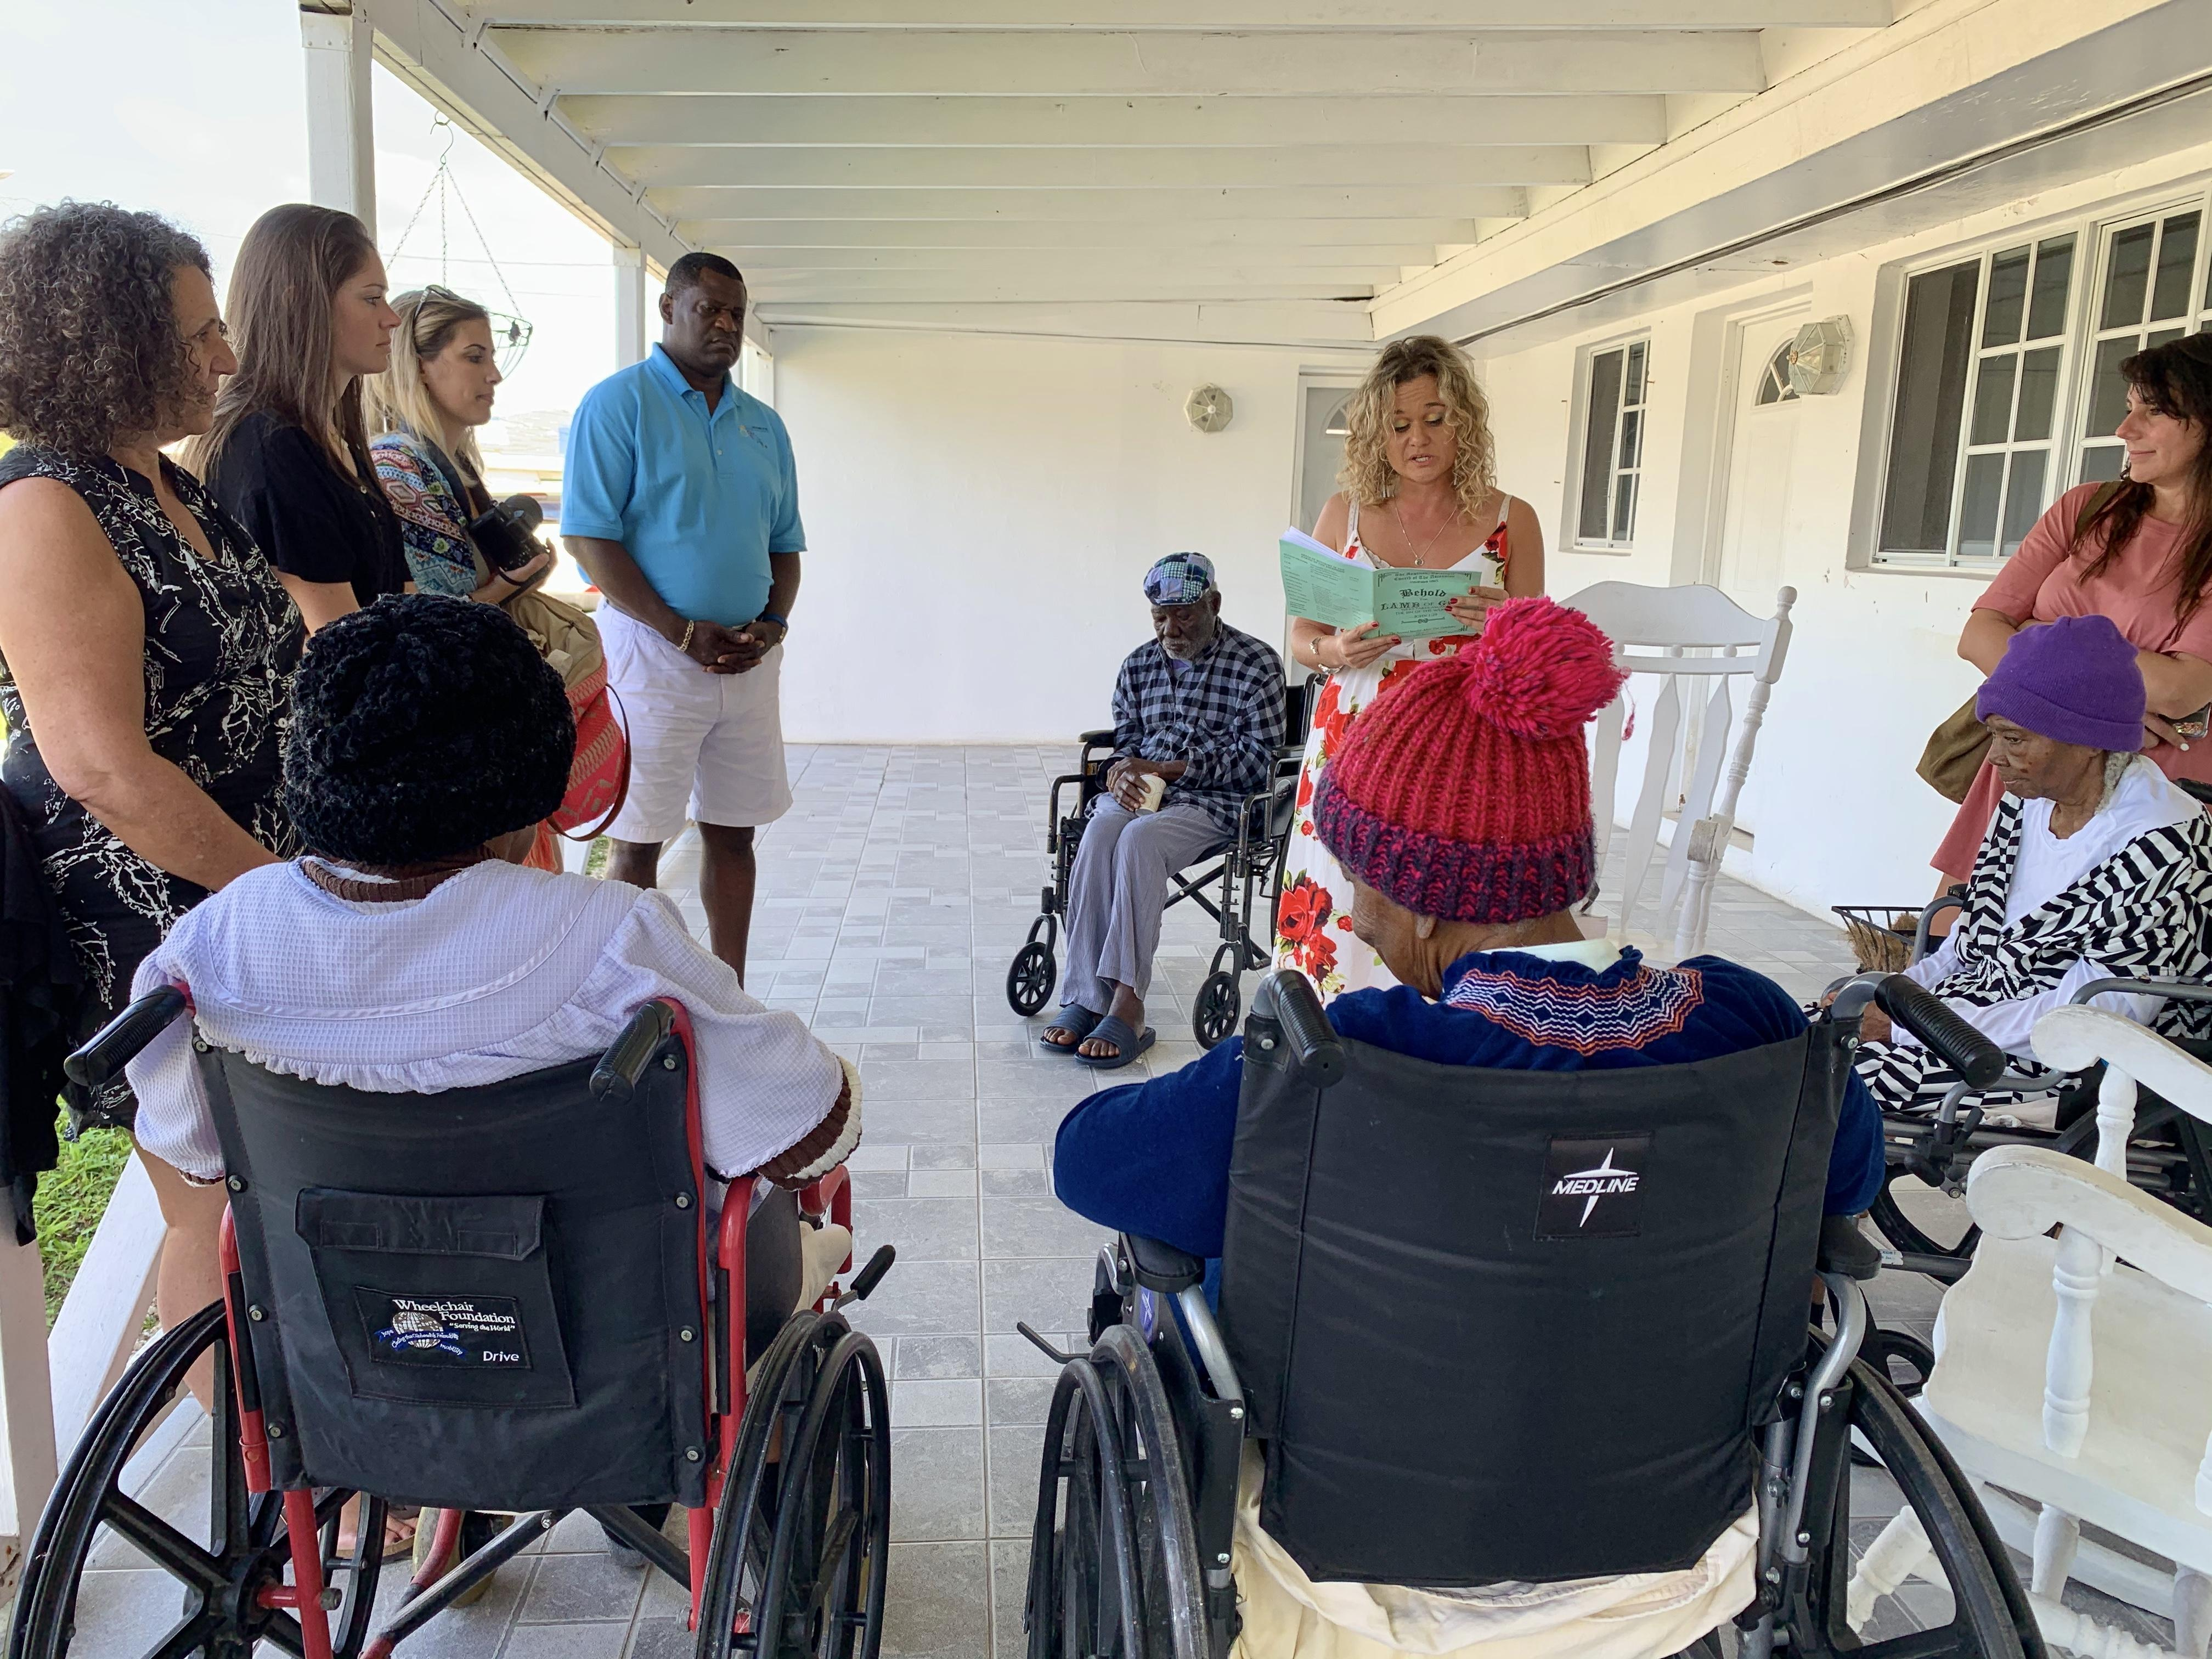 The familiarization tour included a stop to the Grand Bahama Home for the Aged where the visitors spent time reading and socializing with the residents.